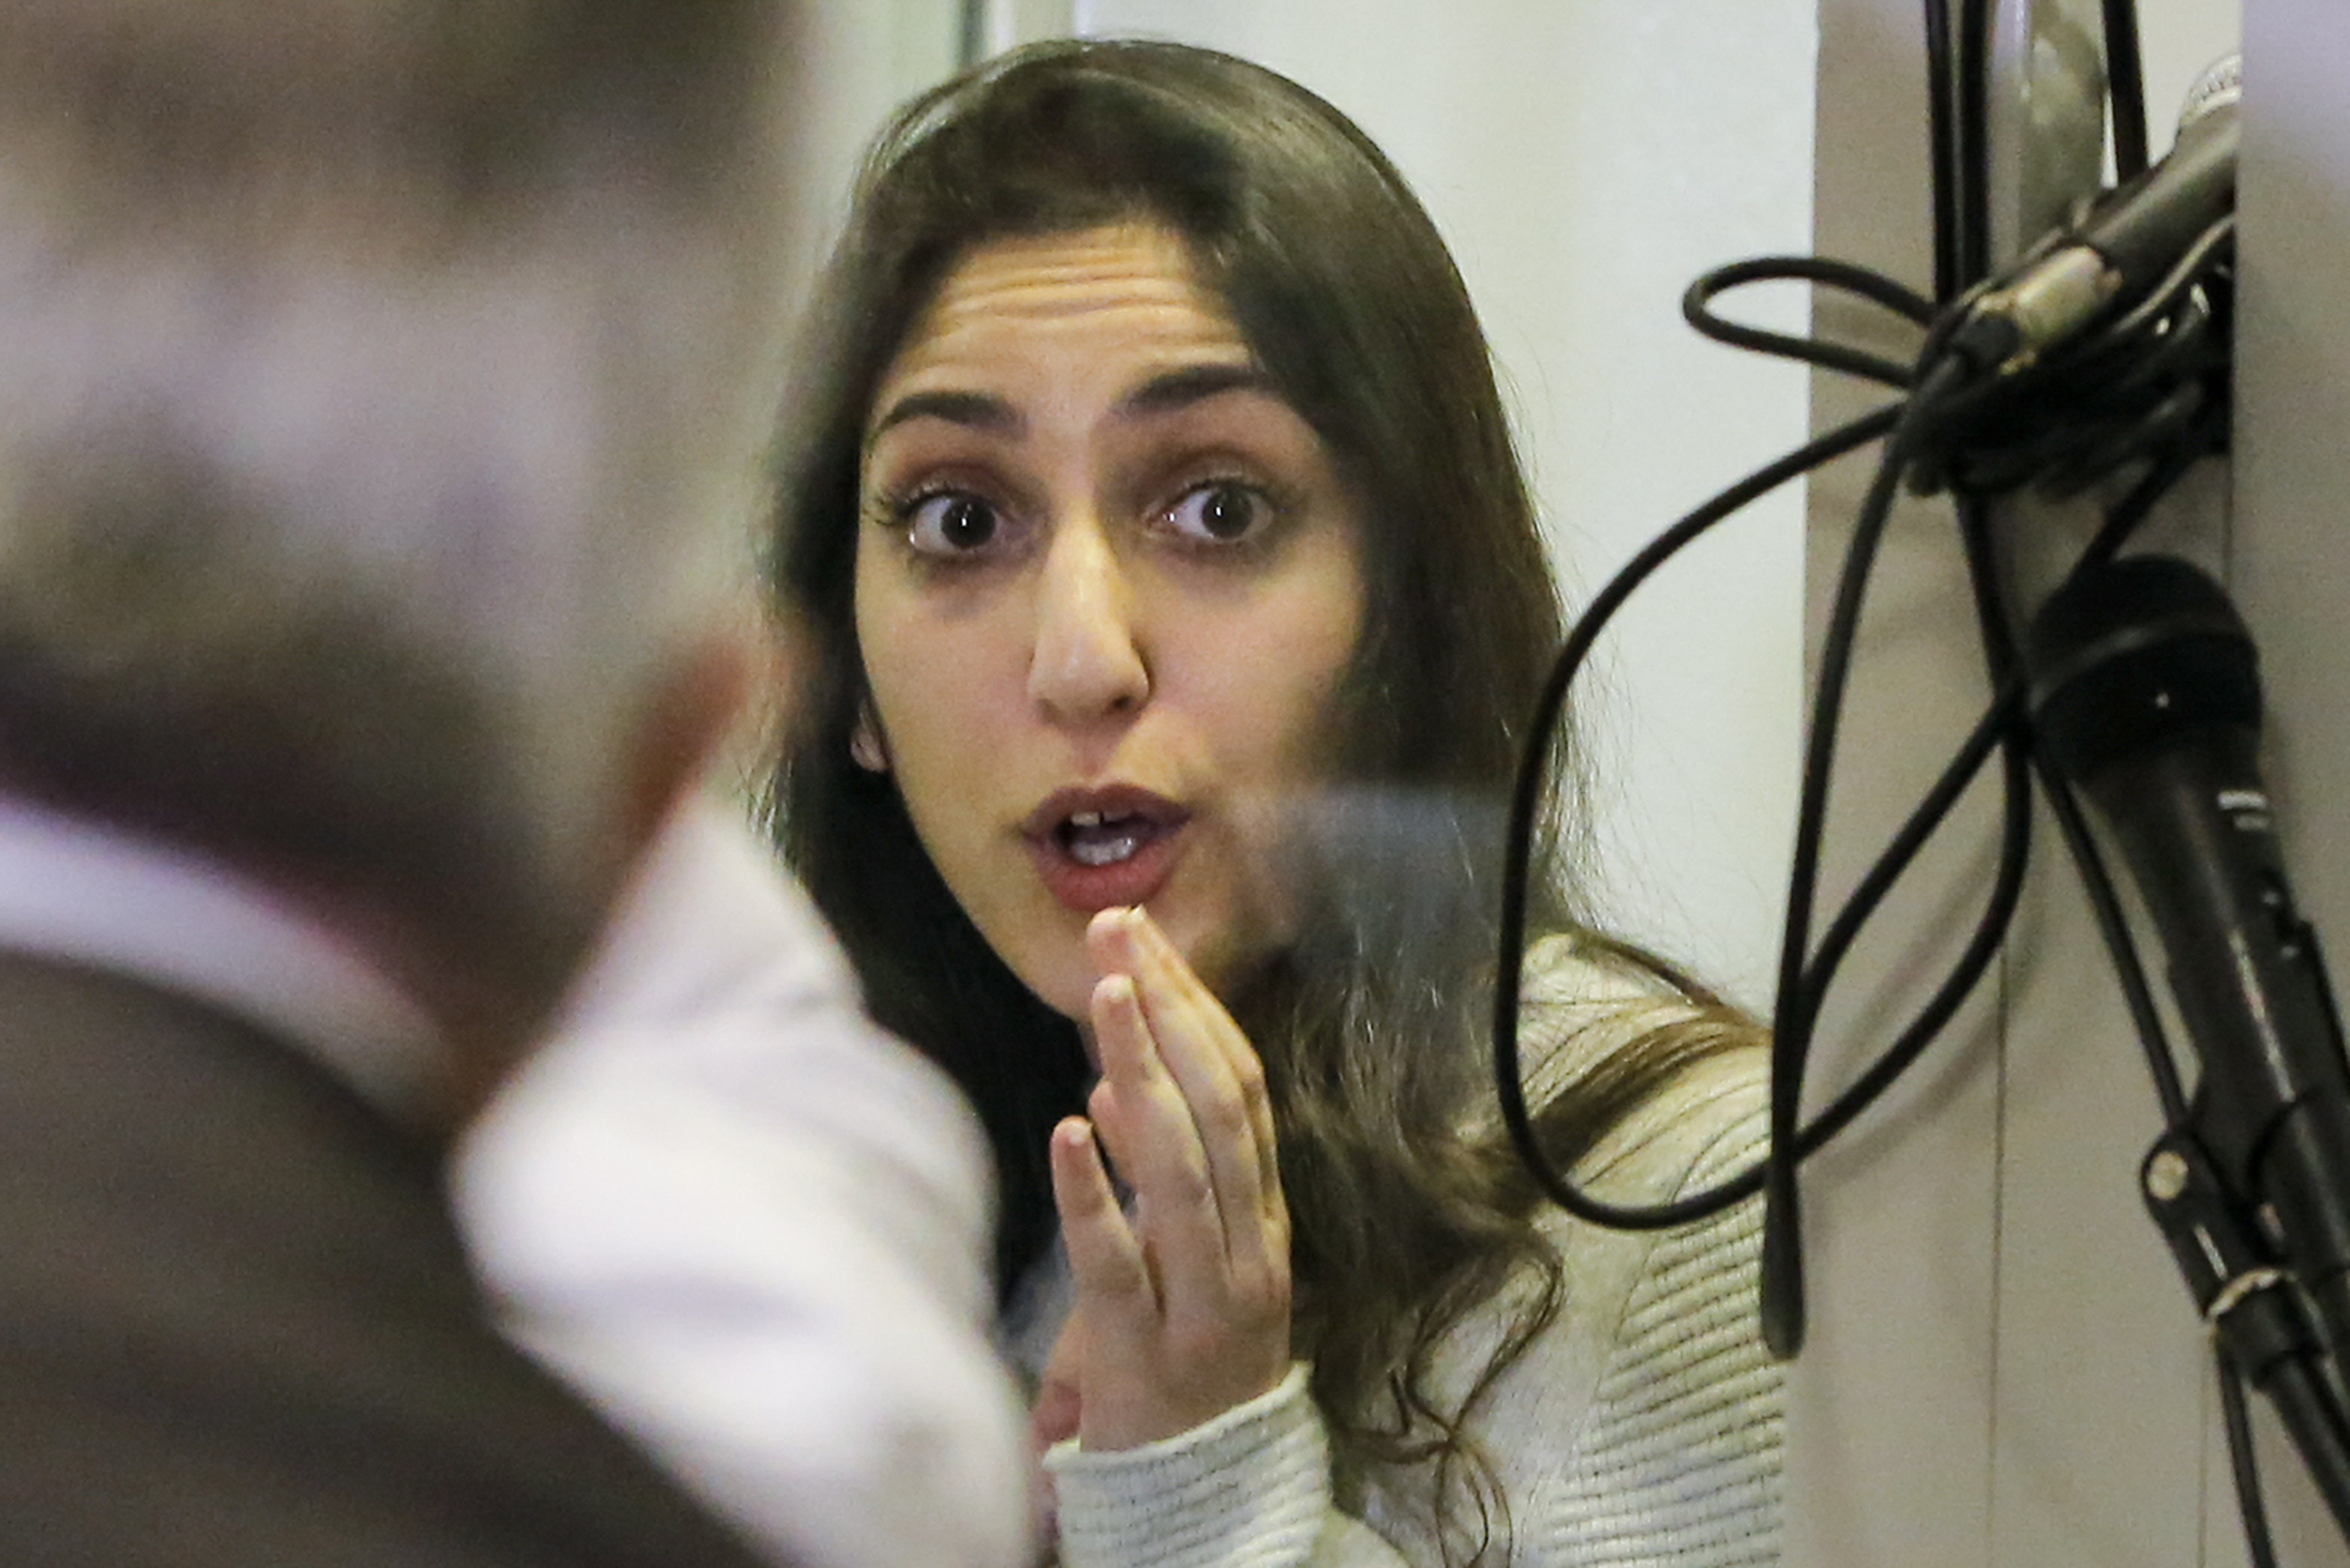 Putin pardons Israeli woman jailed in Russia on drug charges